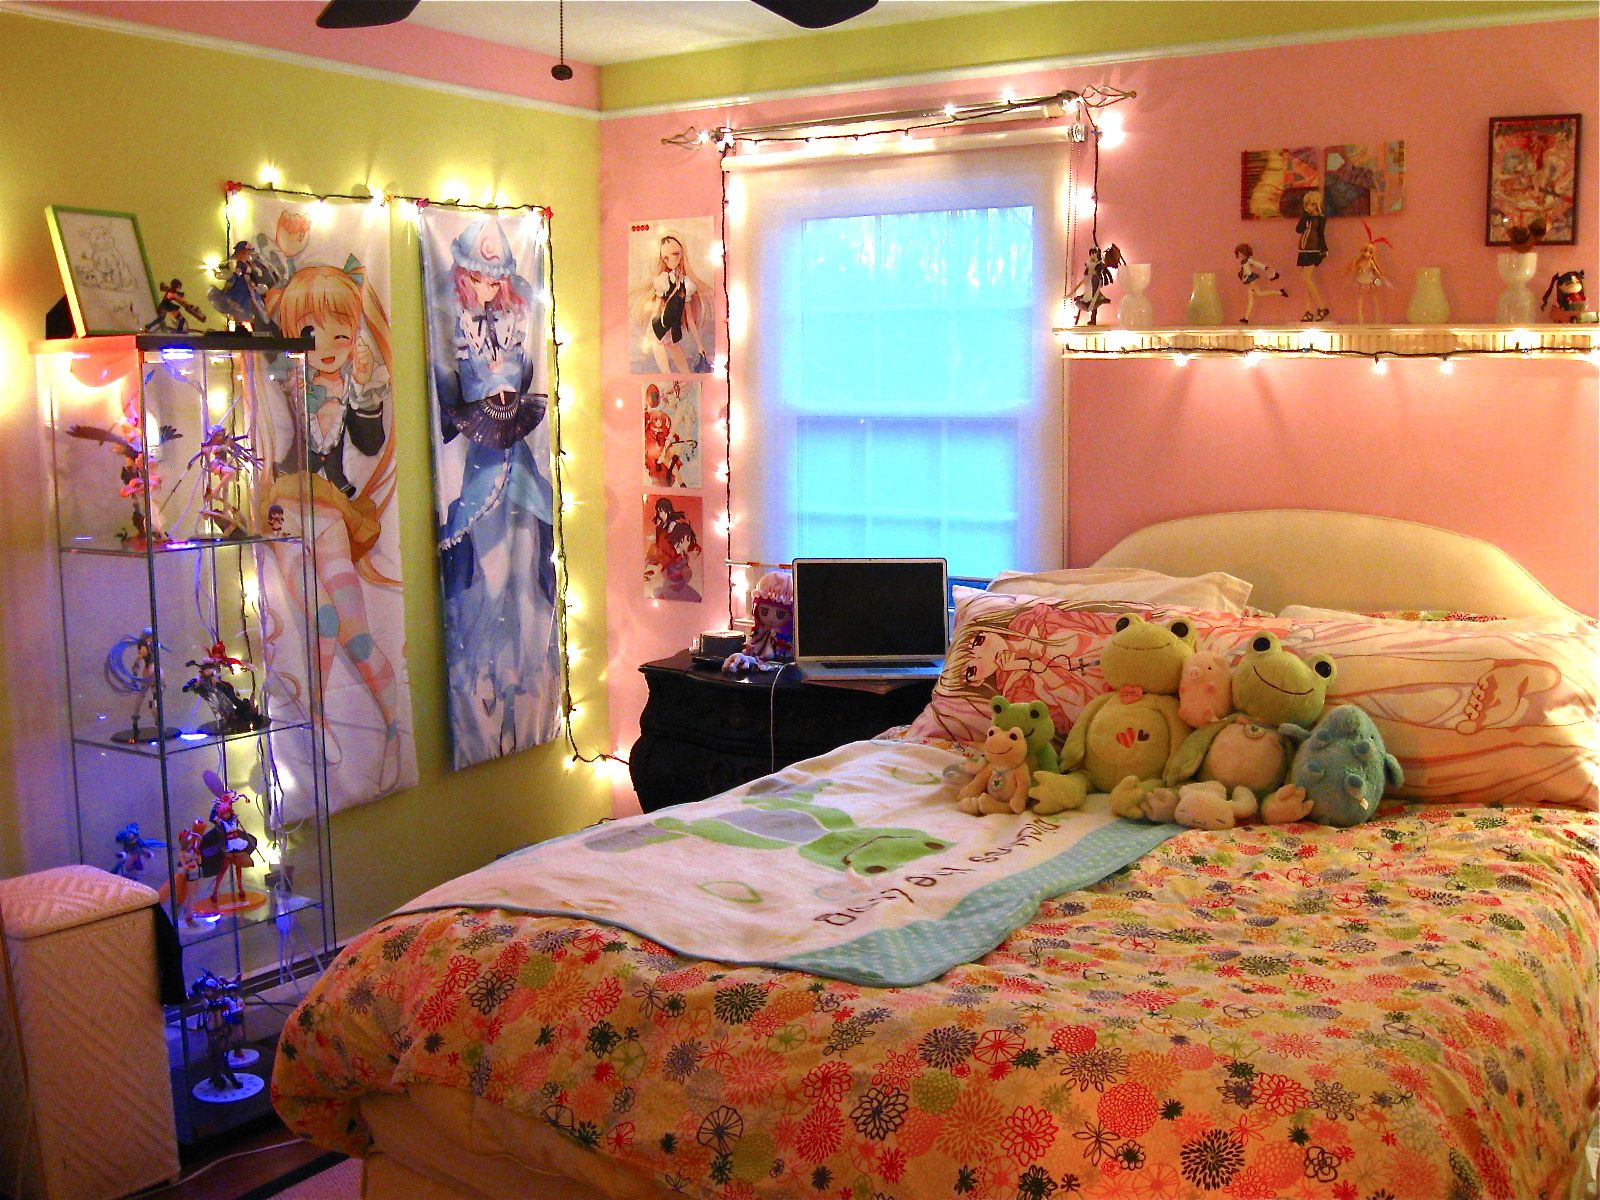 Girly Anime Room I Like It But I Think I Can Do Better Huh Jason You Know What Forget The